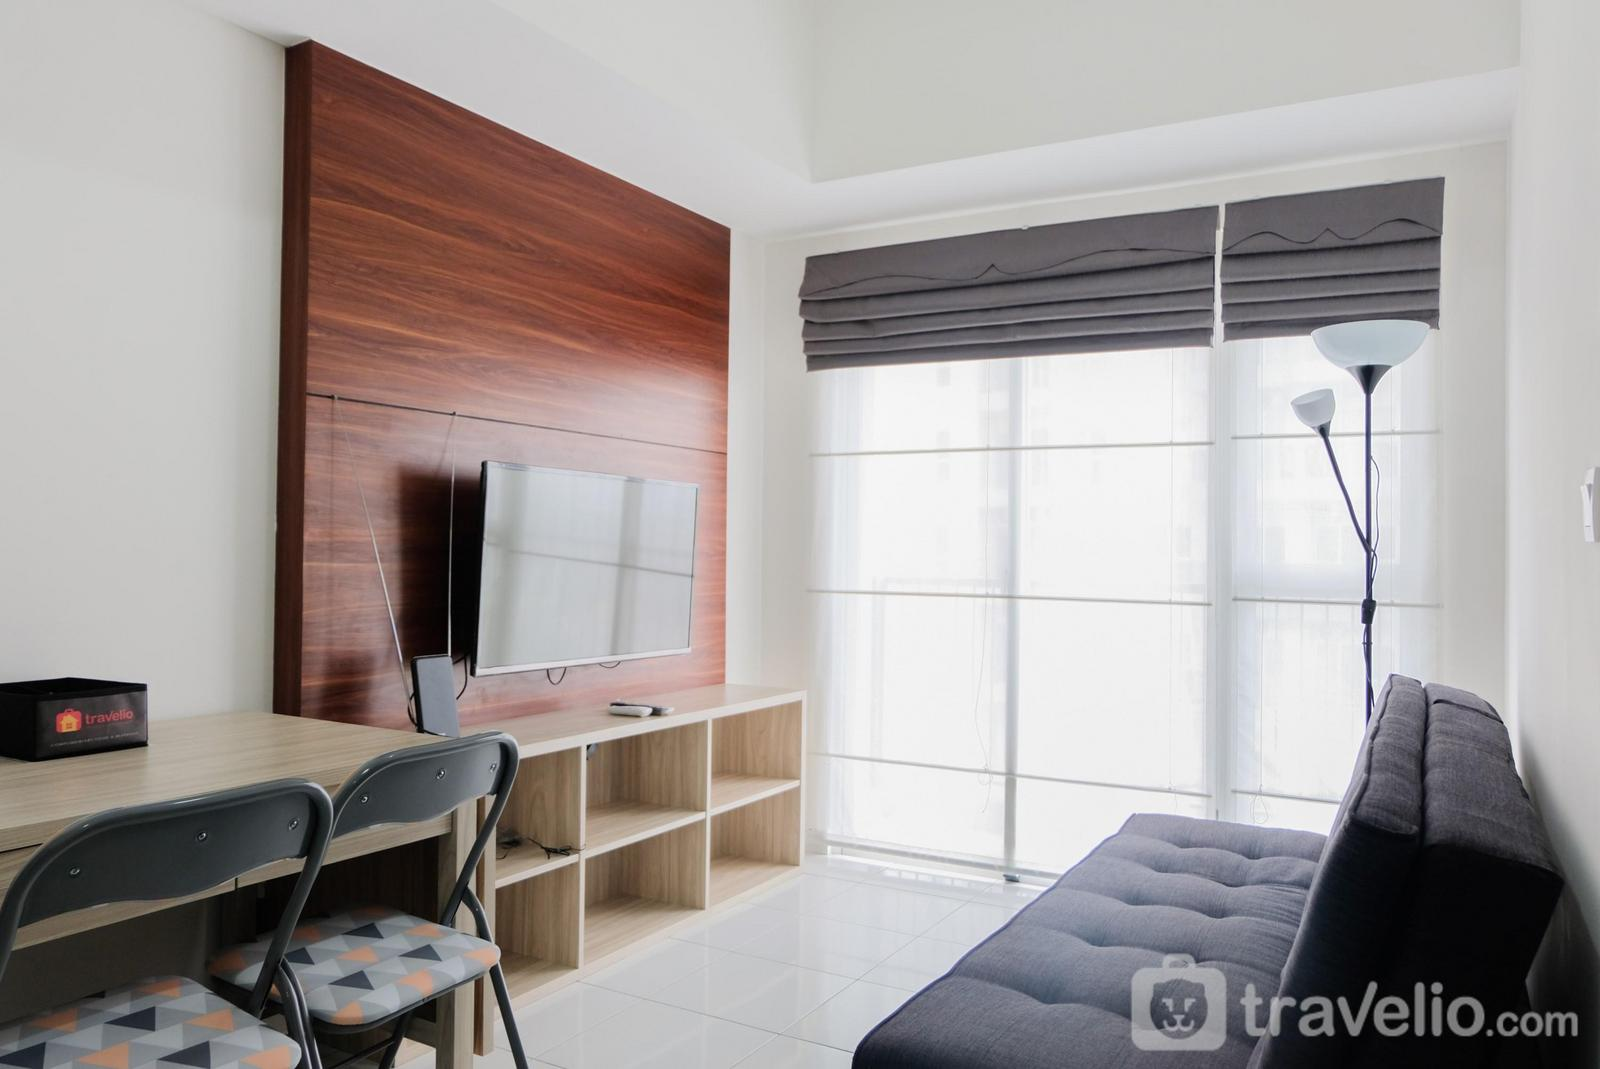 Casa de Parco Apartment - Elegant 1BR Apartment at Casa De Parco near AEON Mall By Travelio